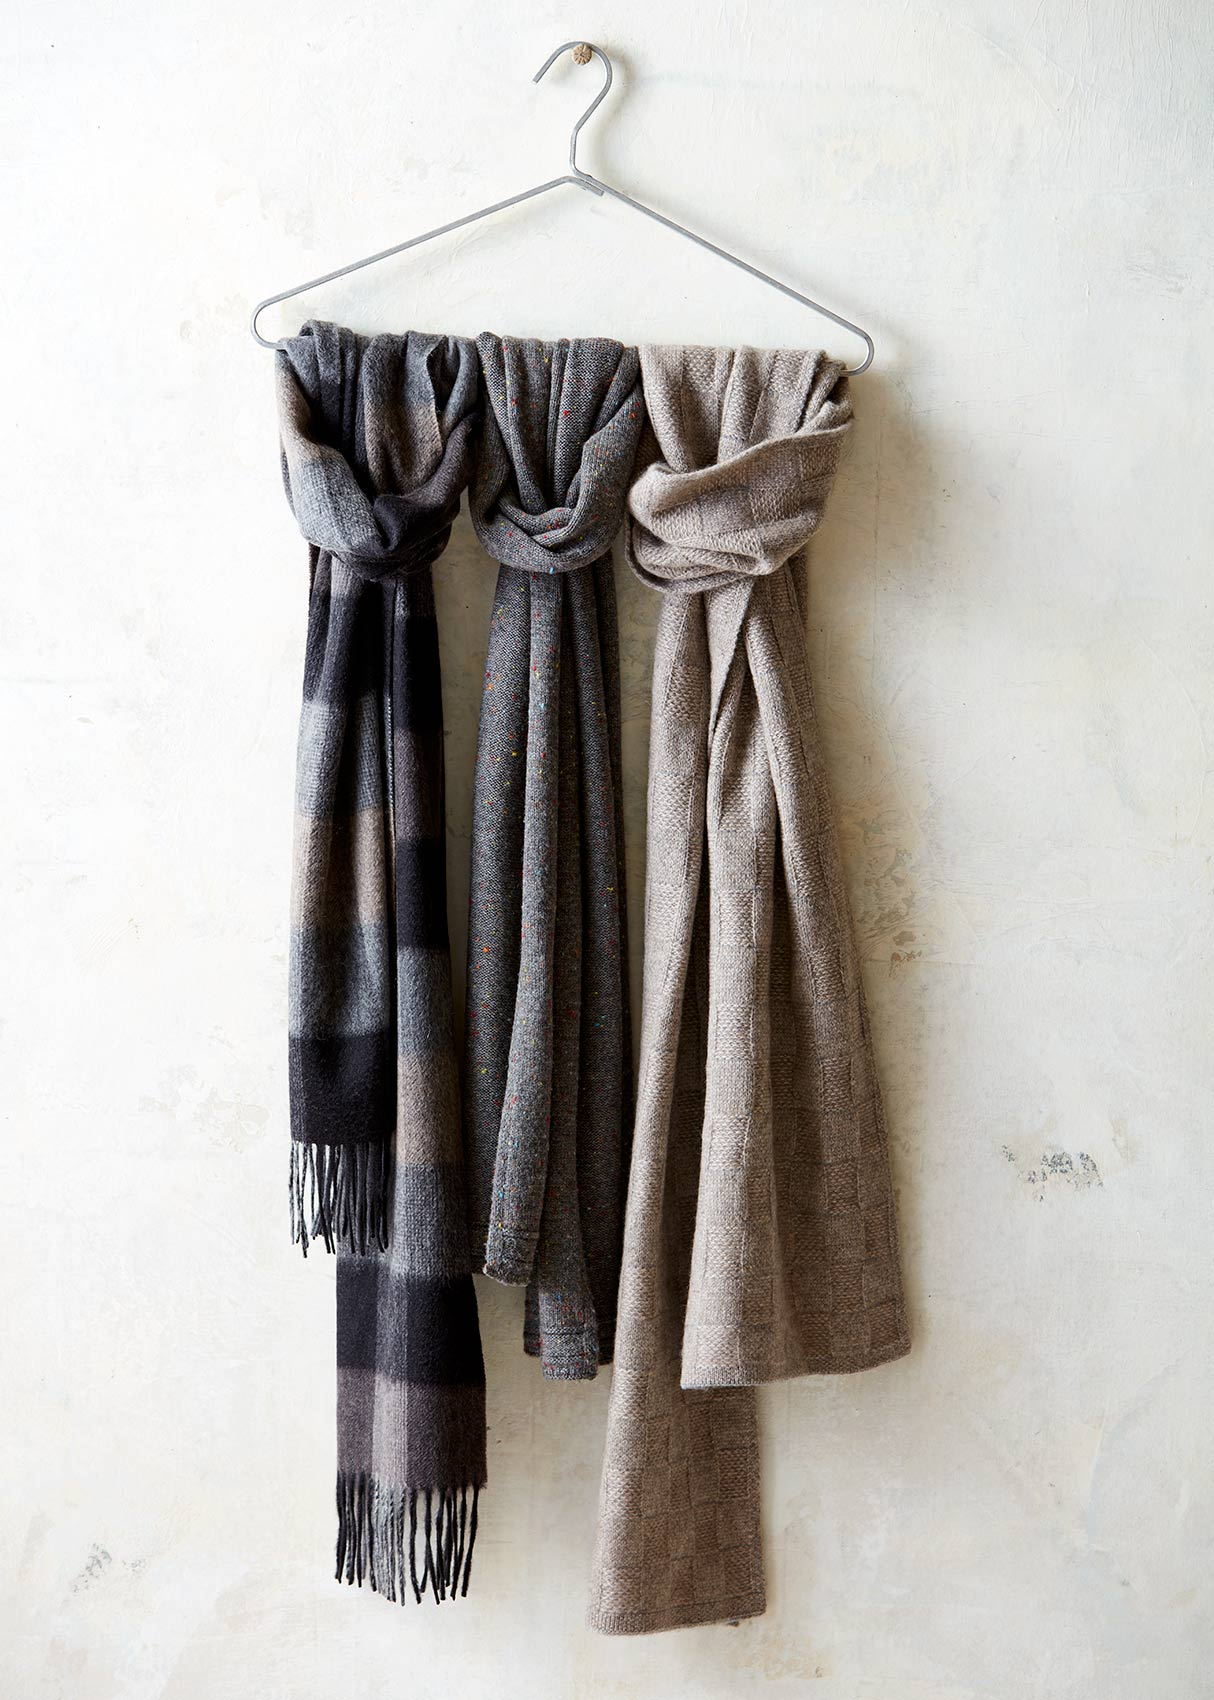 Catalog photography featuring scarves hung against a plaster wall